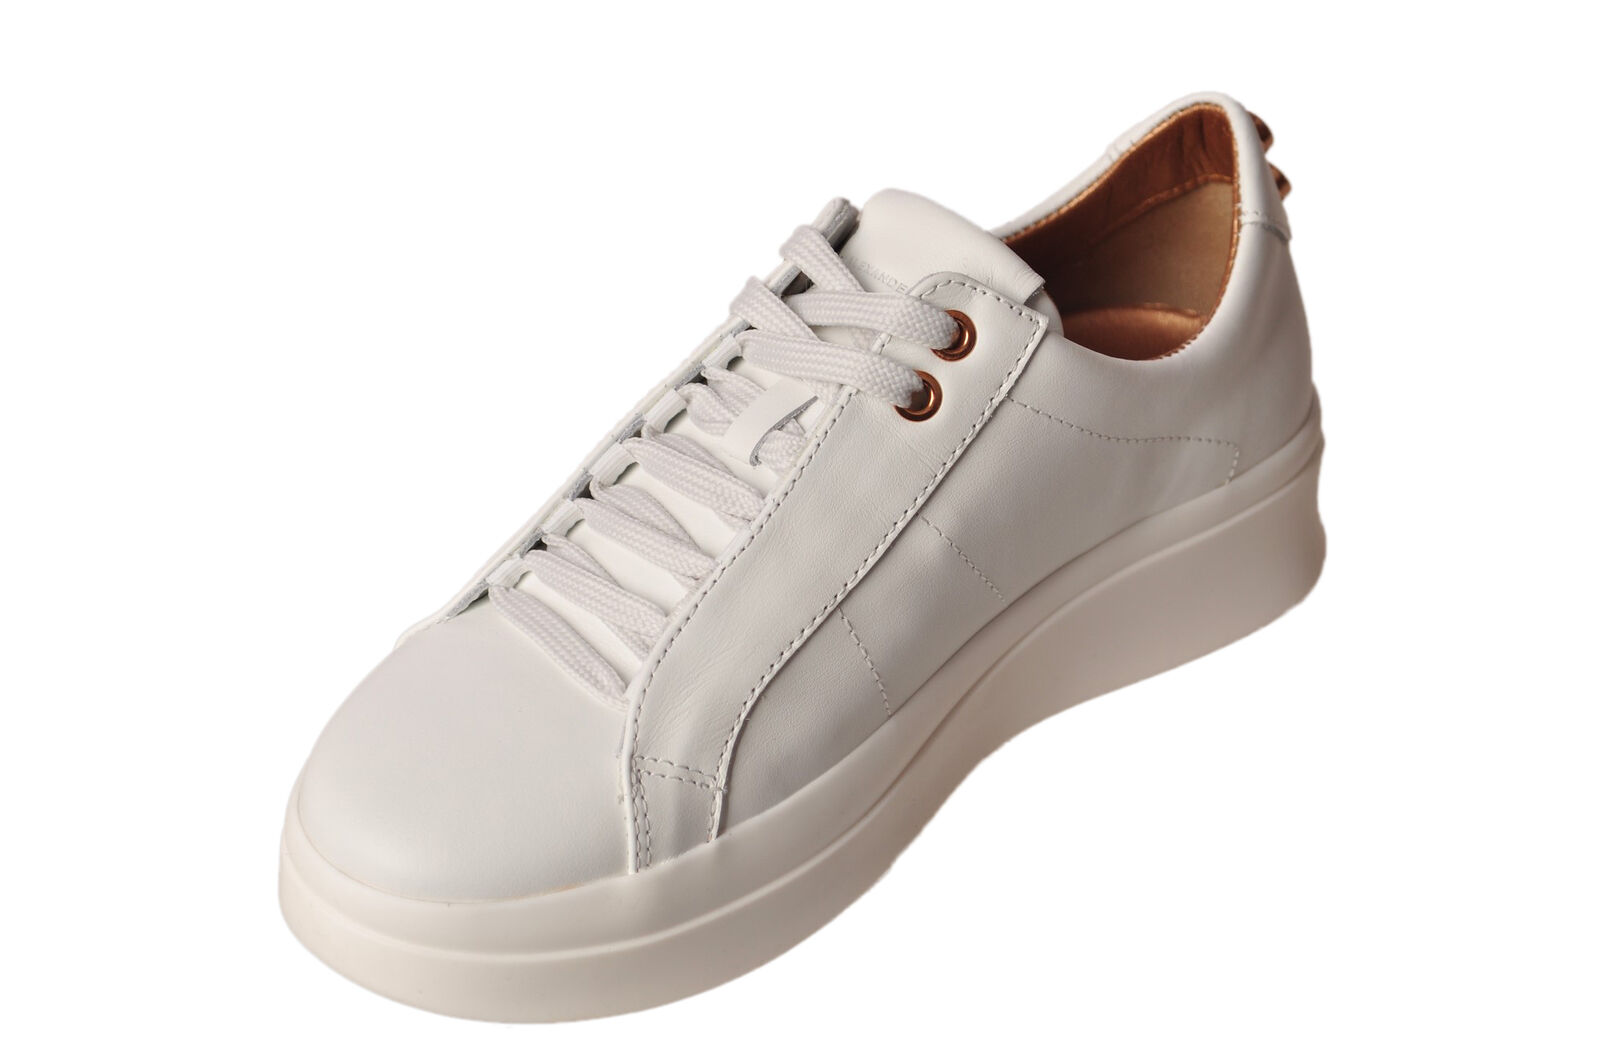 Alexander Smith - - - chaussures-baskets low - Woman - blanc - 5030608E184305 90b52b